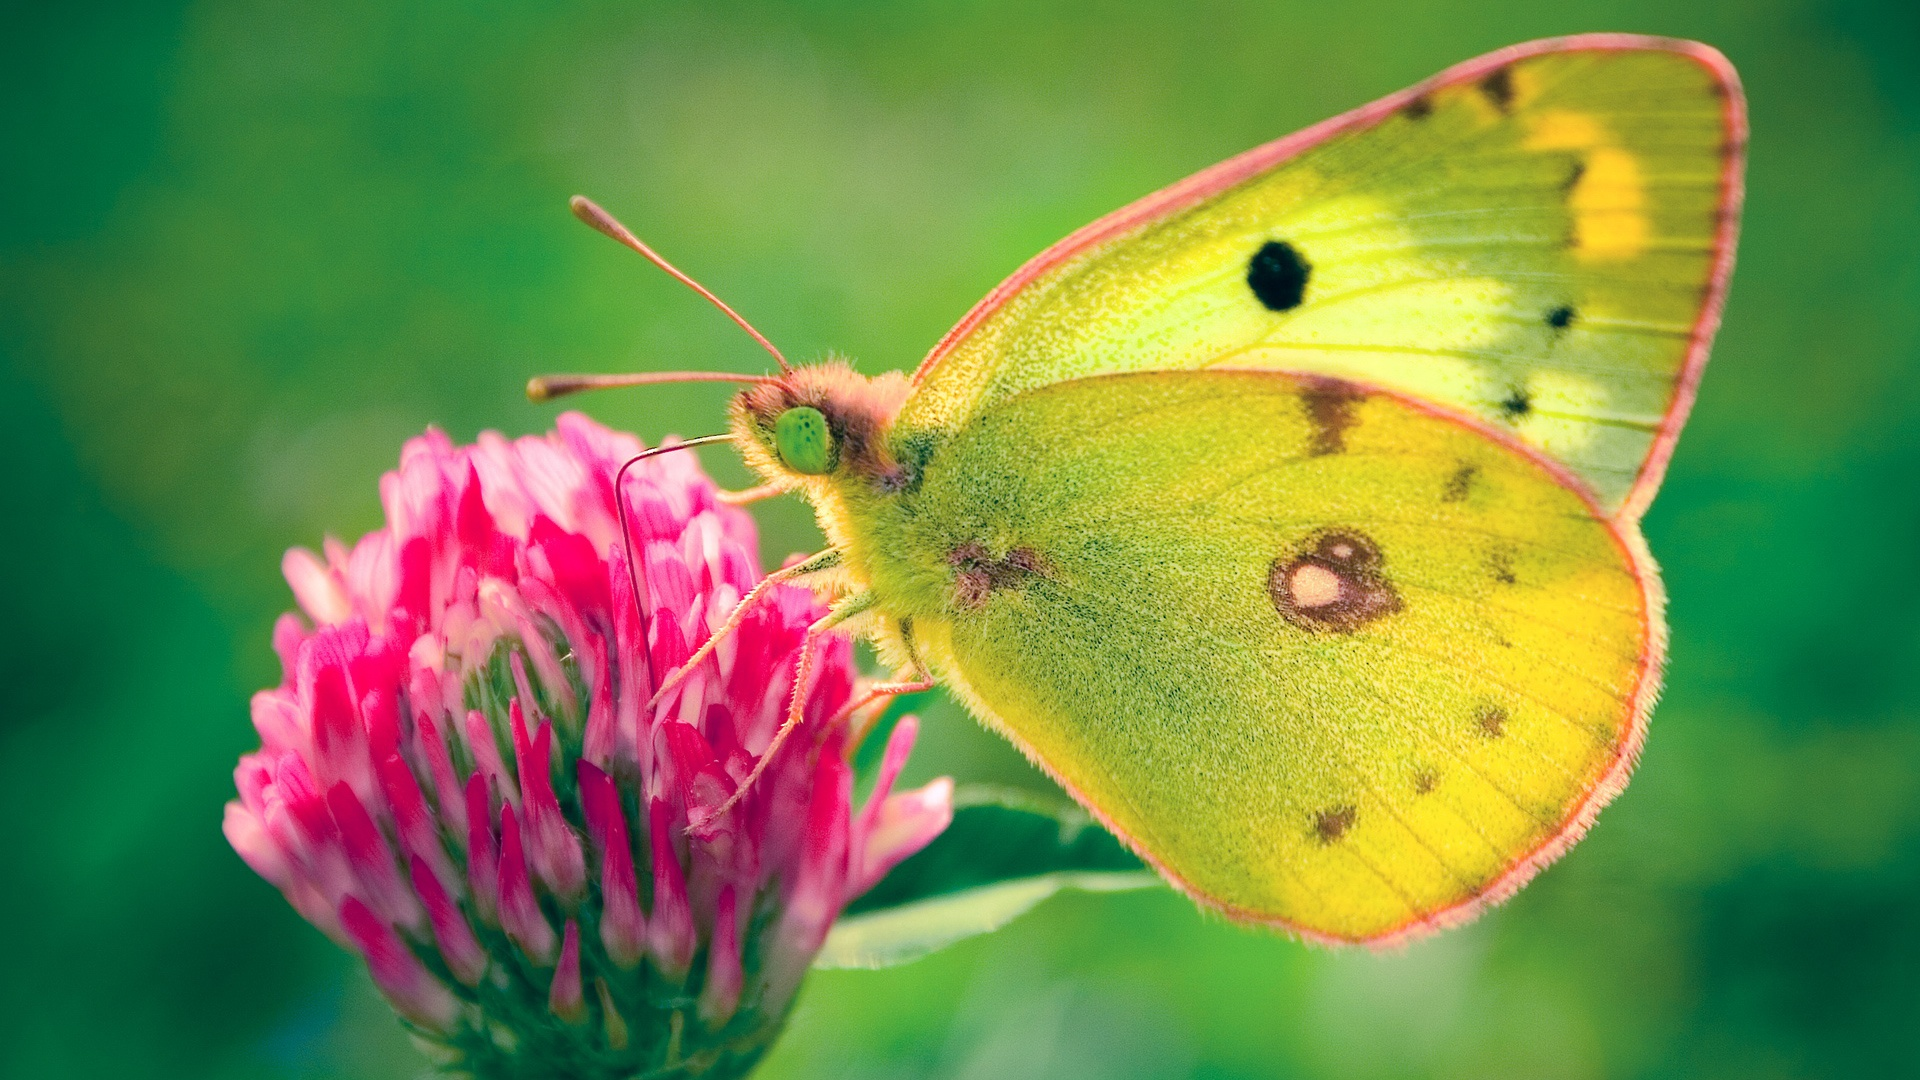 Best Wallpaper High Quality Butterfly - Butterfly-Image-Wallpapers-022  Snapshot_521171.jpg